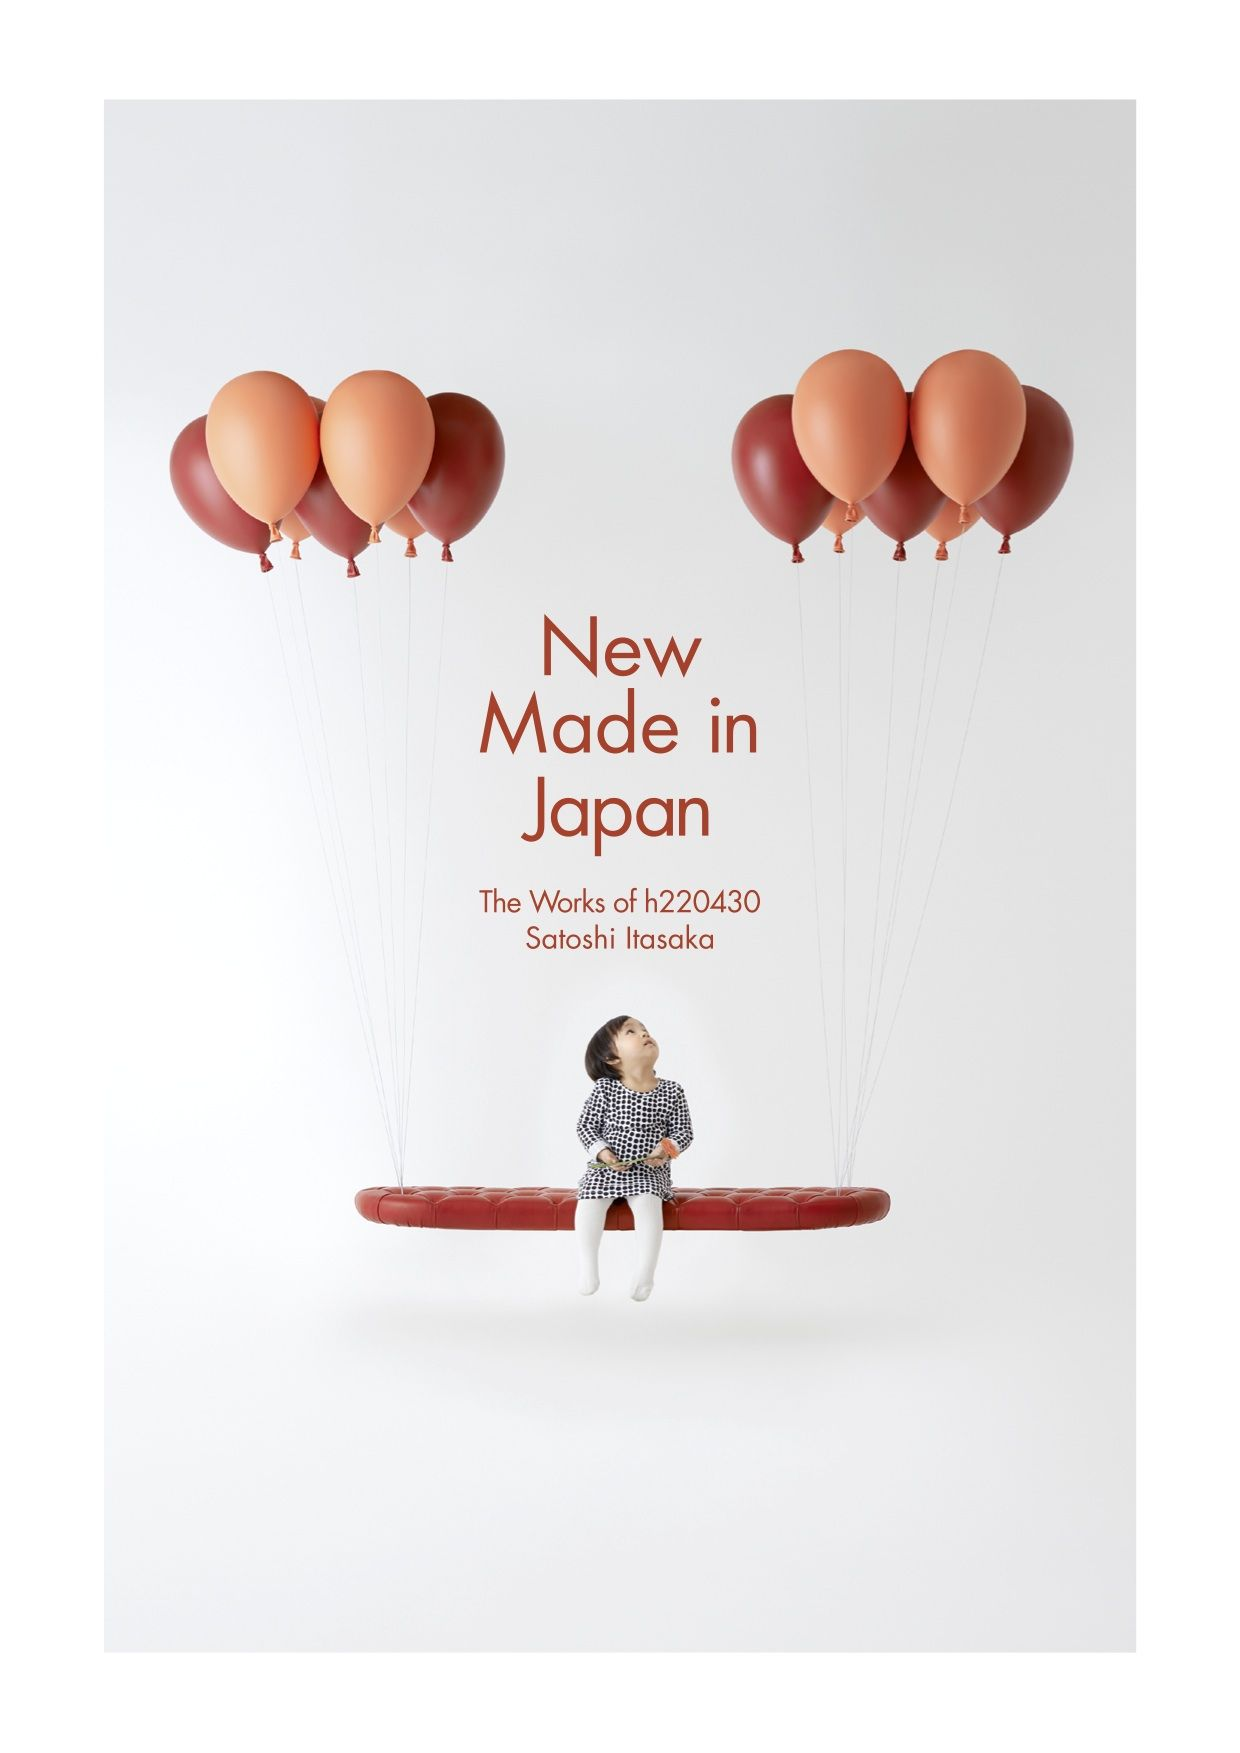 New Made in Japan Published by Seigensha